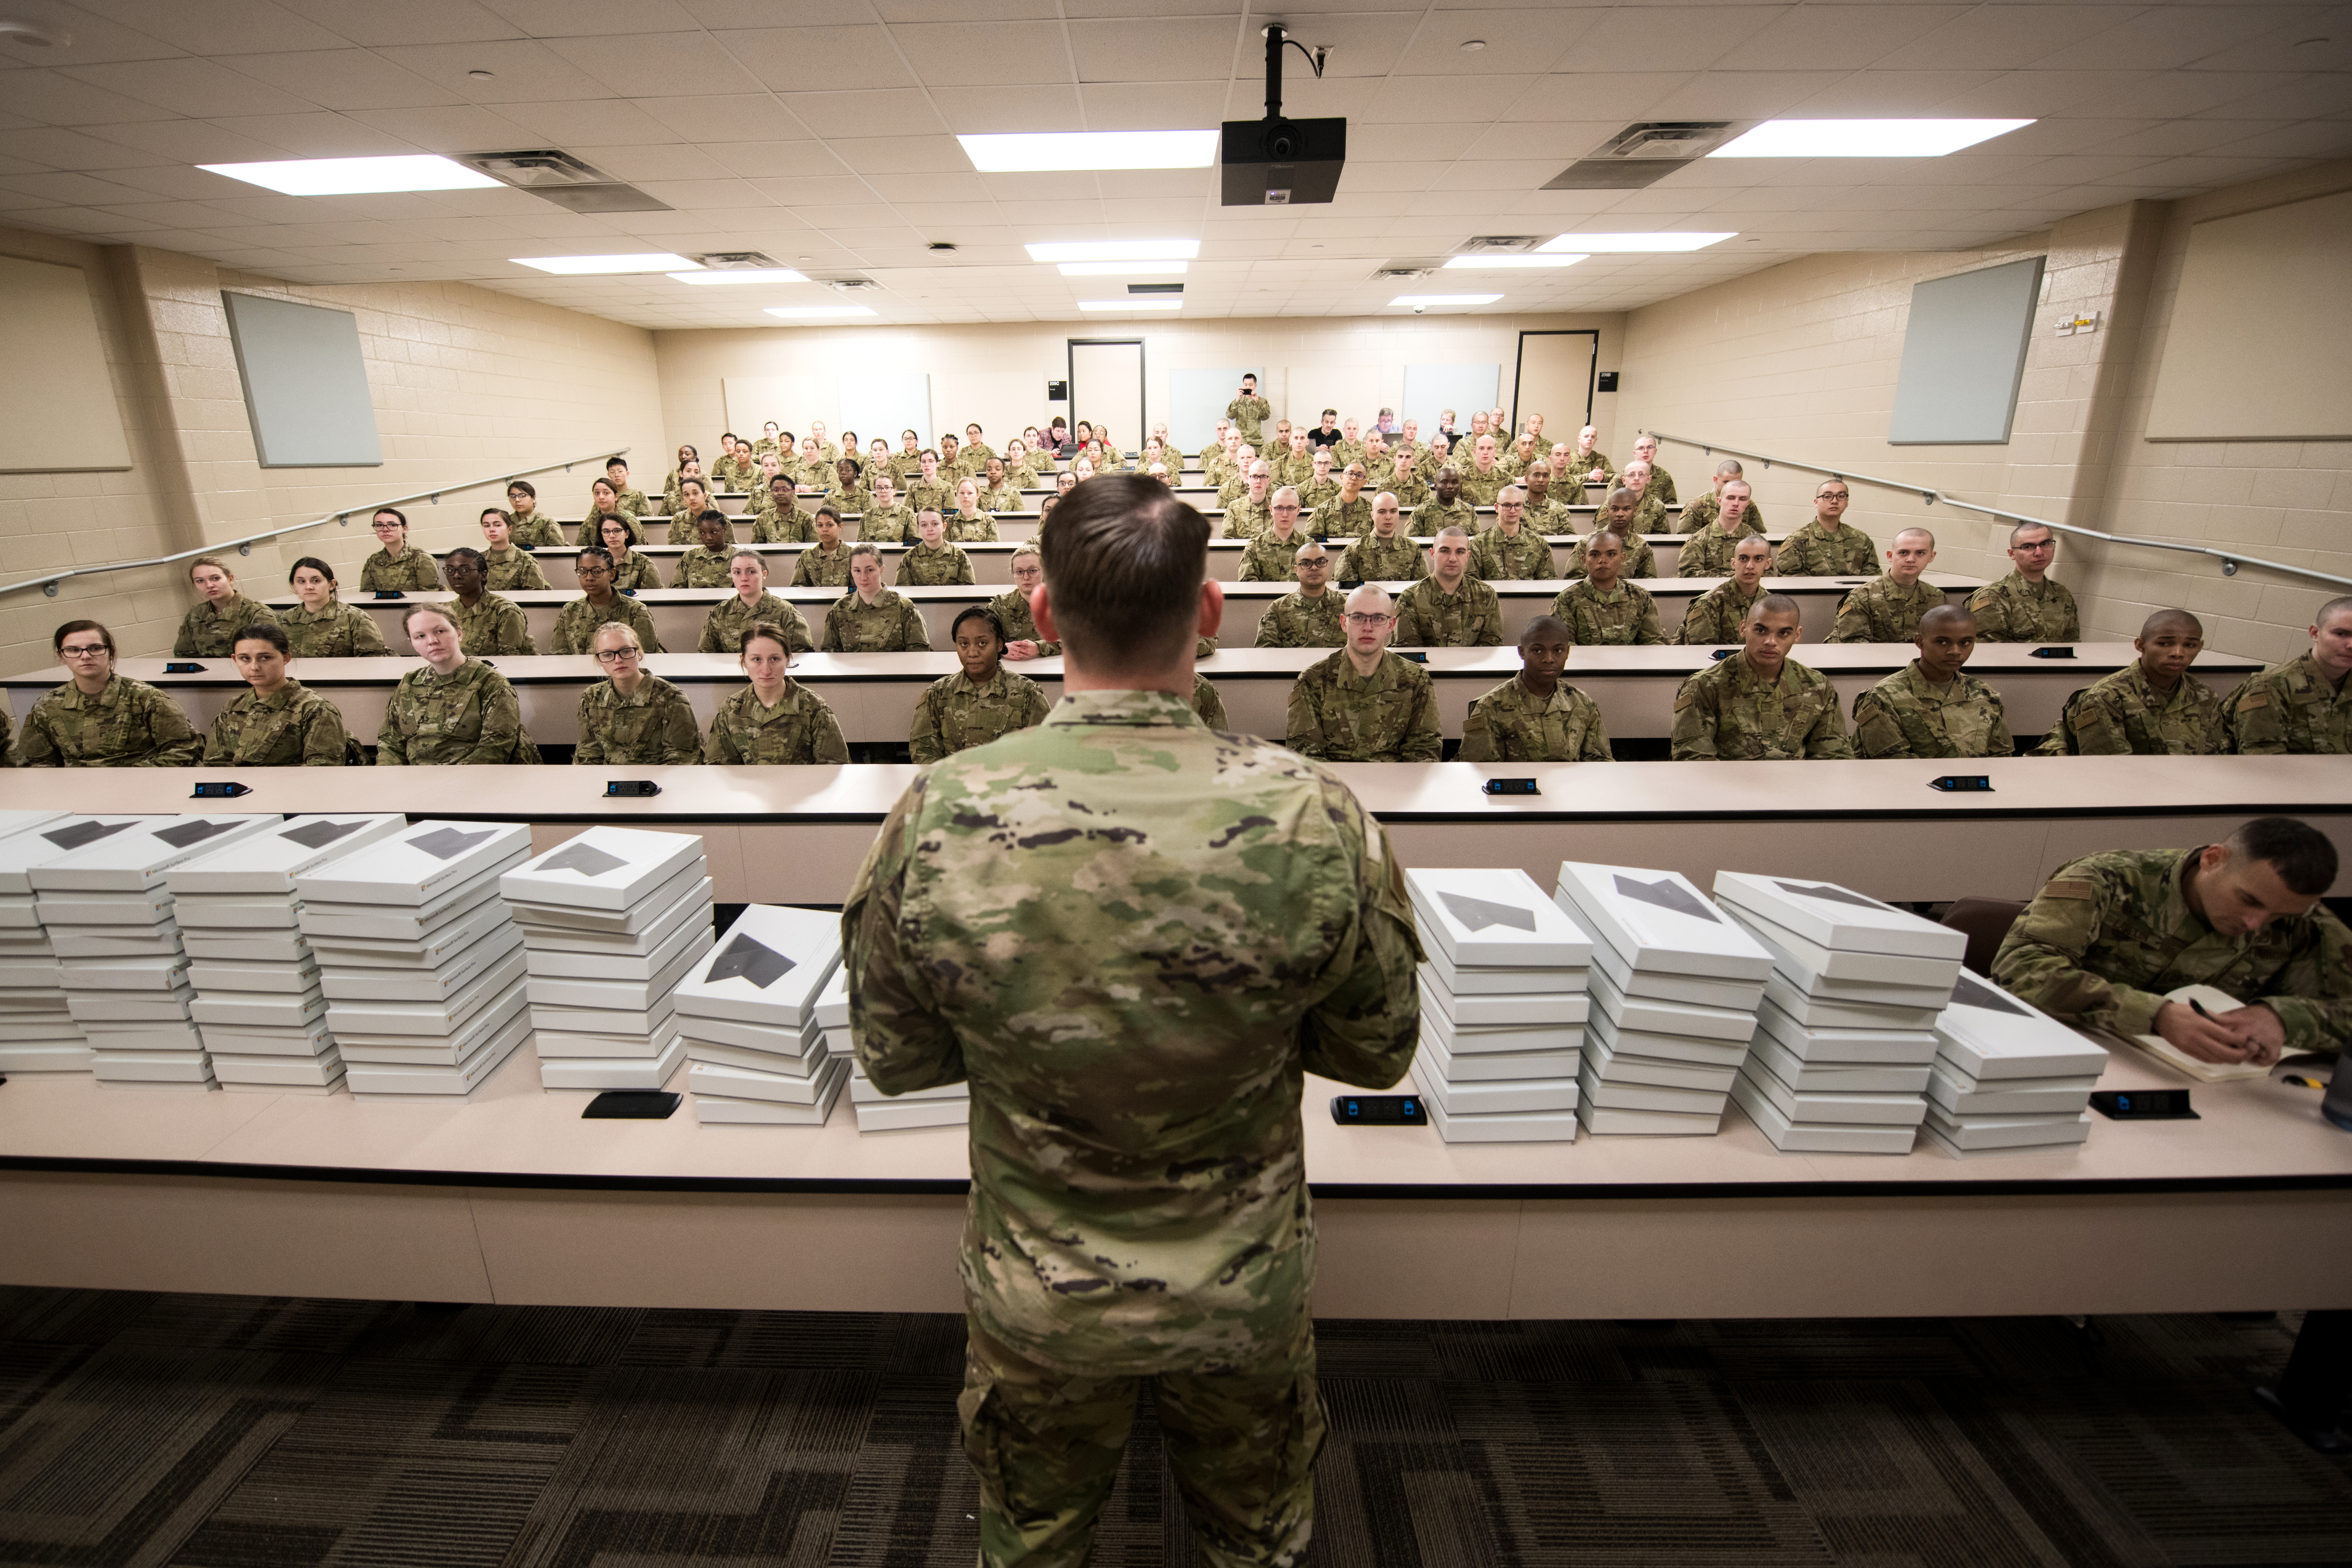 U.S. Air Force basic military training trainees are issued  personal computers during in-processing as part of a pilot test under a  Cooperative Research and Development Agreement partnership at Joint Base San  Antonio-Lackland, Texas, Dec. 11, 2019. The computers replace all hard copy  textbooks BMT trainees currently use with the intent to help BMT assess  learning outcomes, value and return on investment. (U.S. Air Force photo by Sarayuth Pinthong)